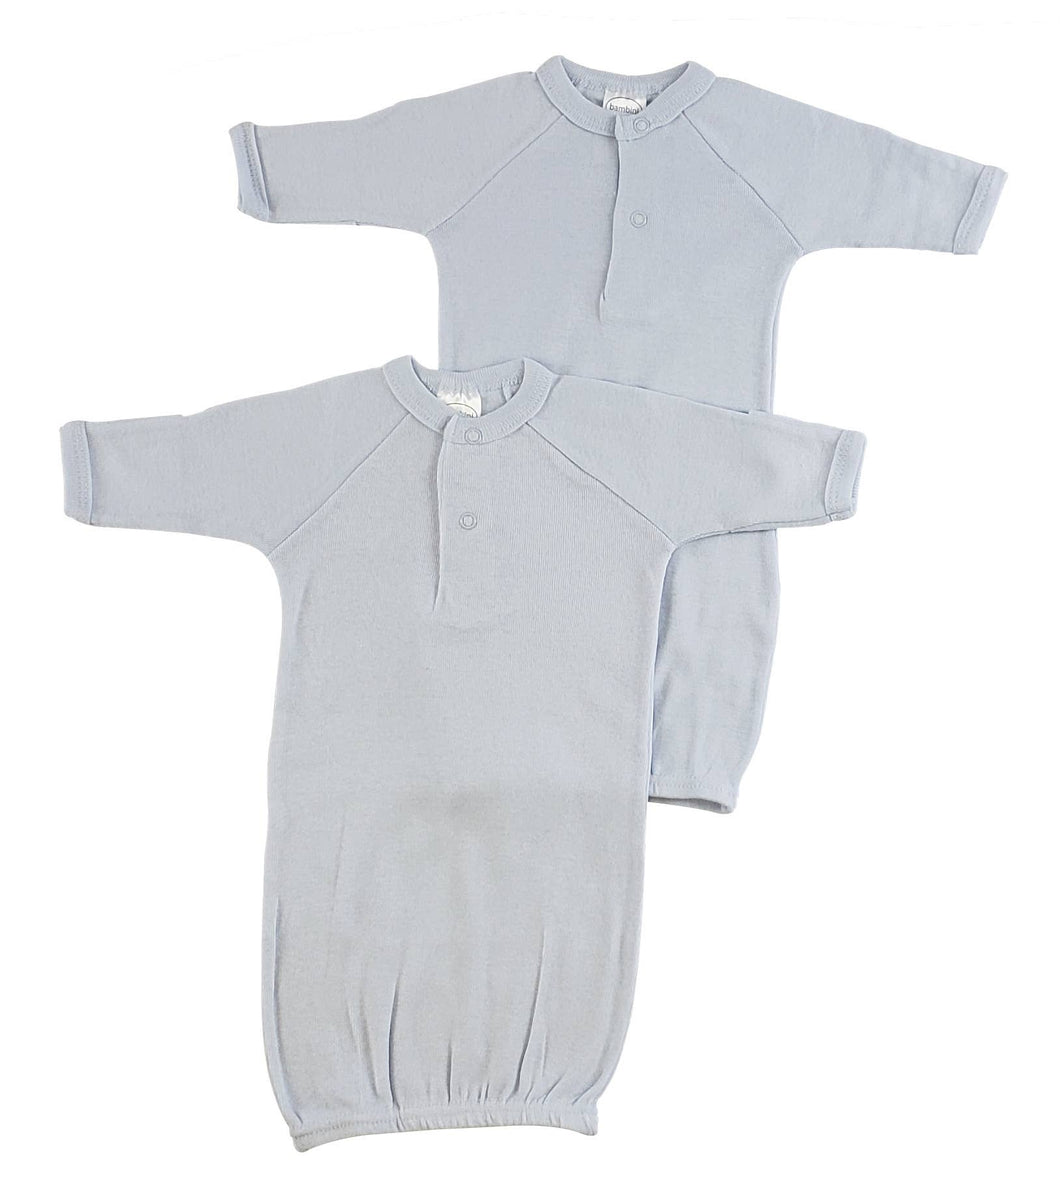 Bambini Preemie Solid Blue Gown (Single Gown)